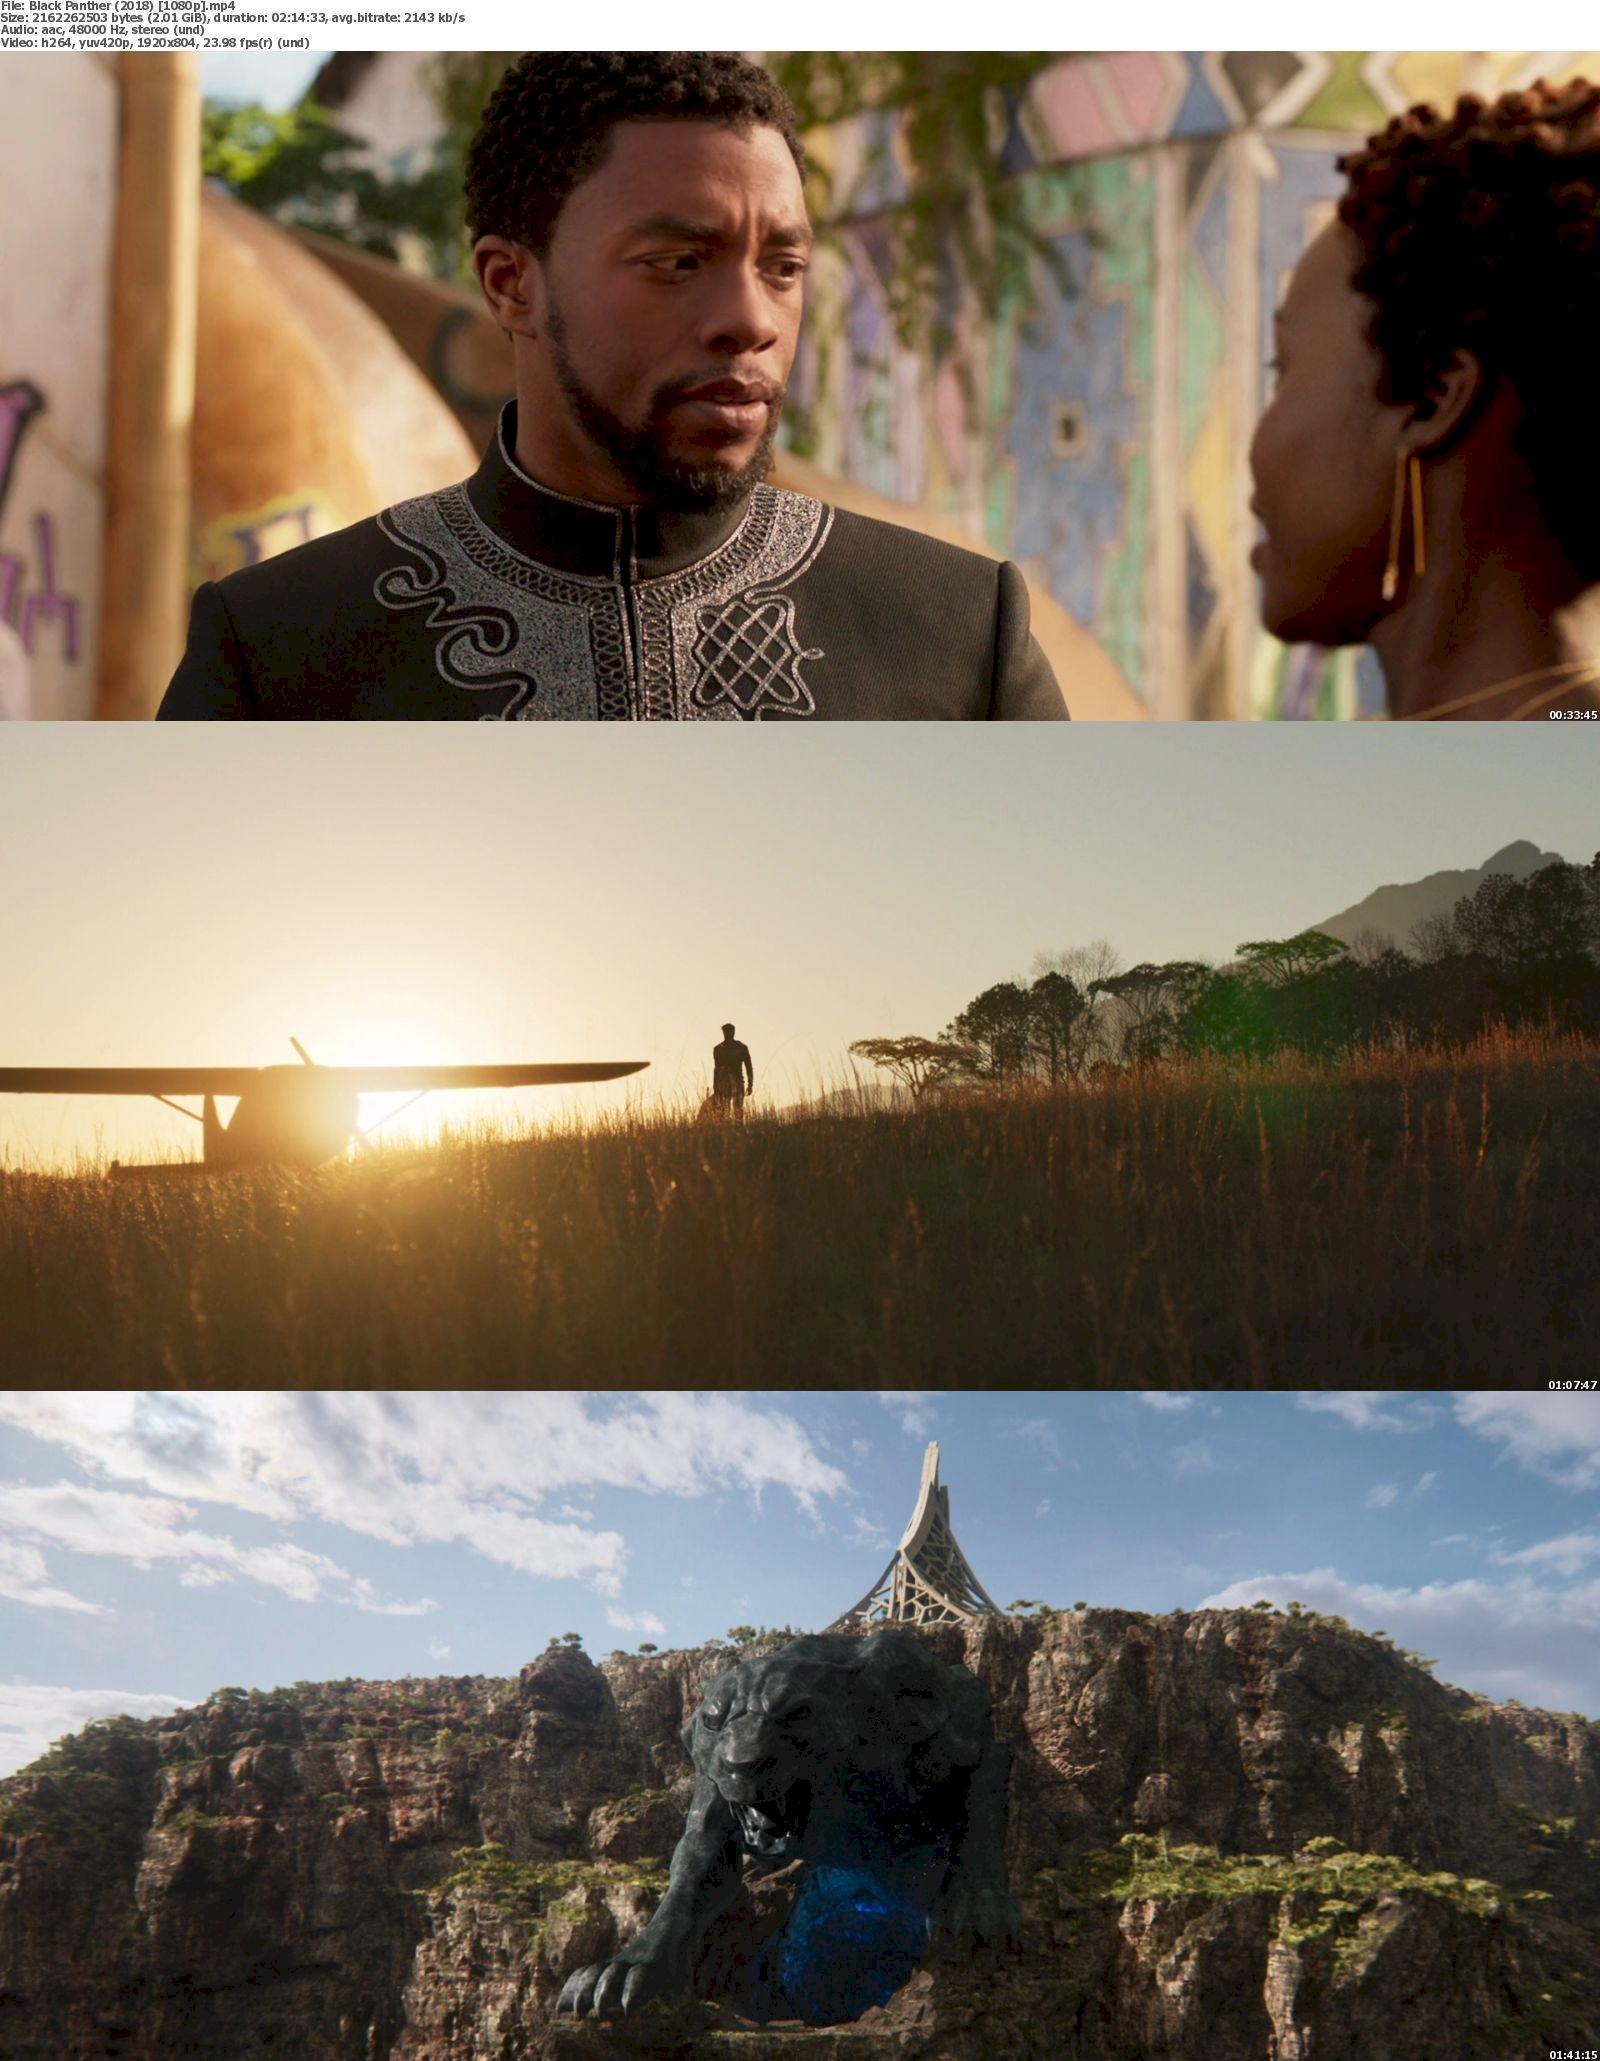 Black Panther (2018) [720p & 1080p & 3D] BluRay Watch Online & Download 1080p Screenshot